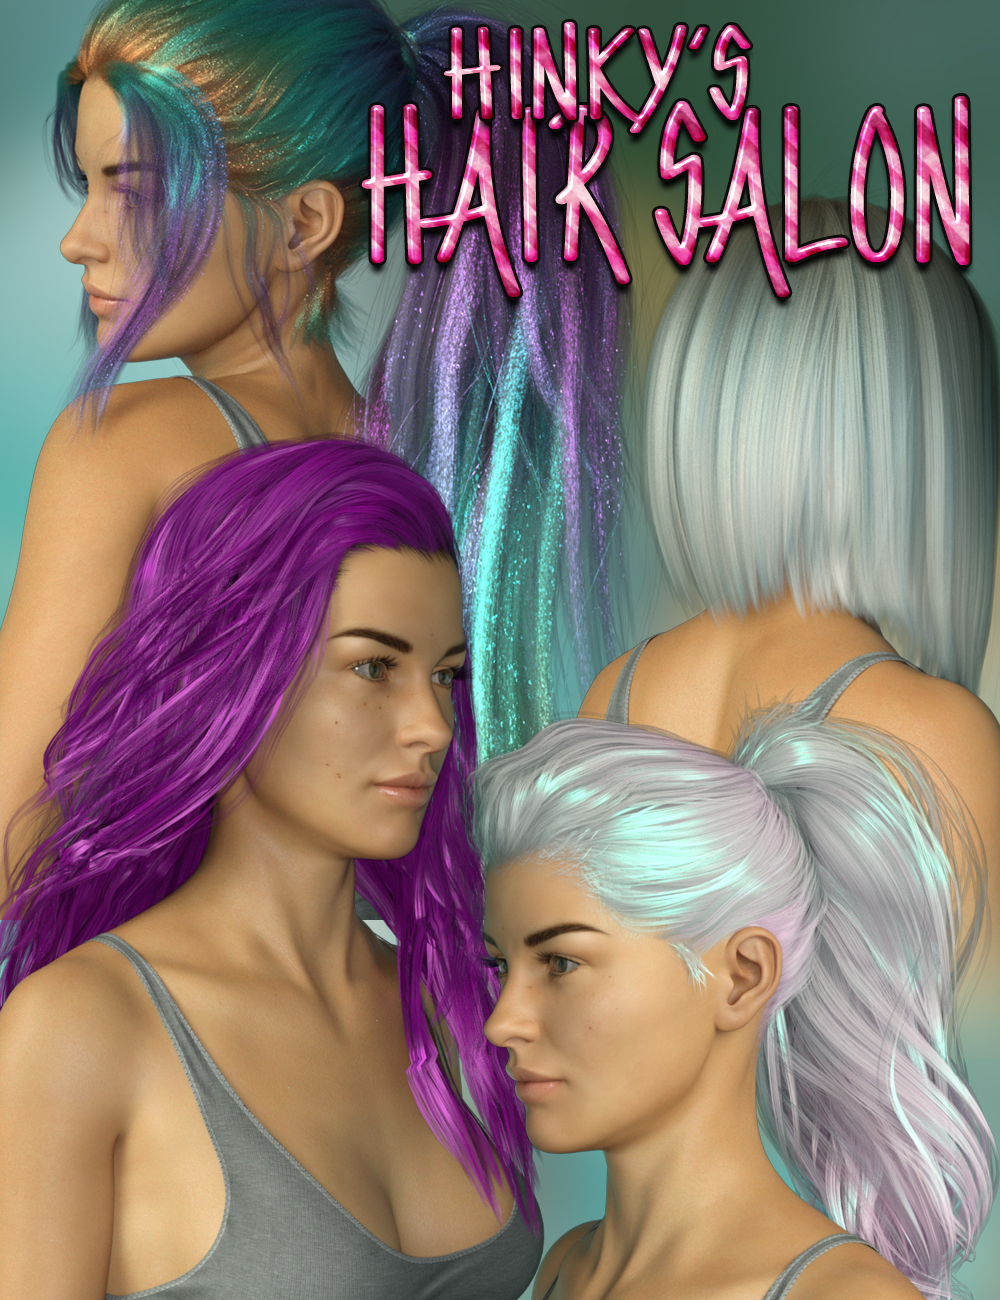 Hinky's Hair Salon Shaders by: SR3, 3D Models by Daz 3D